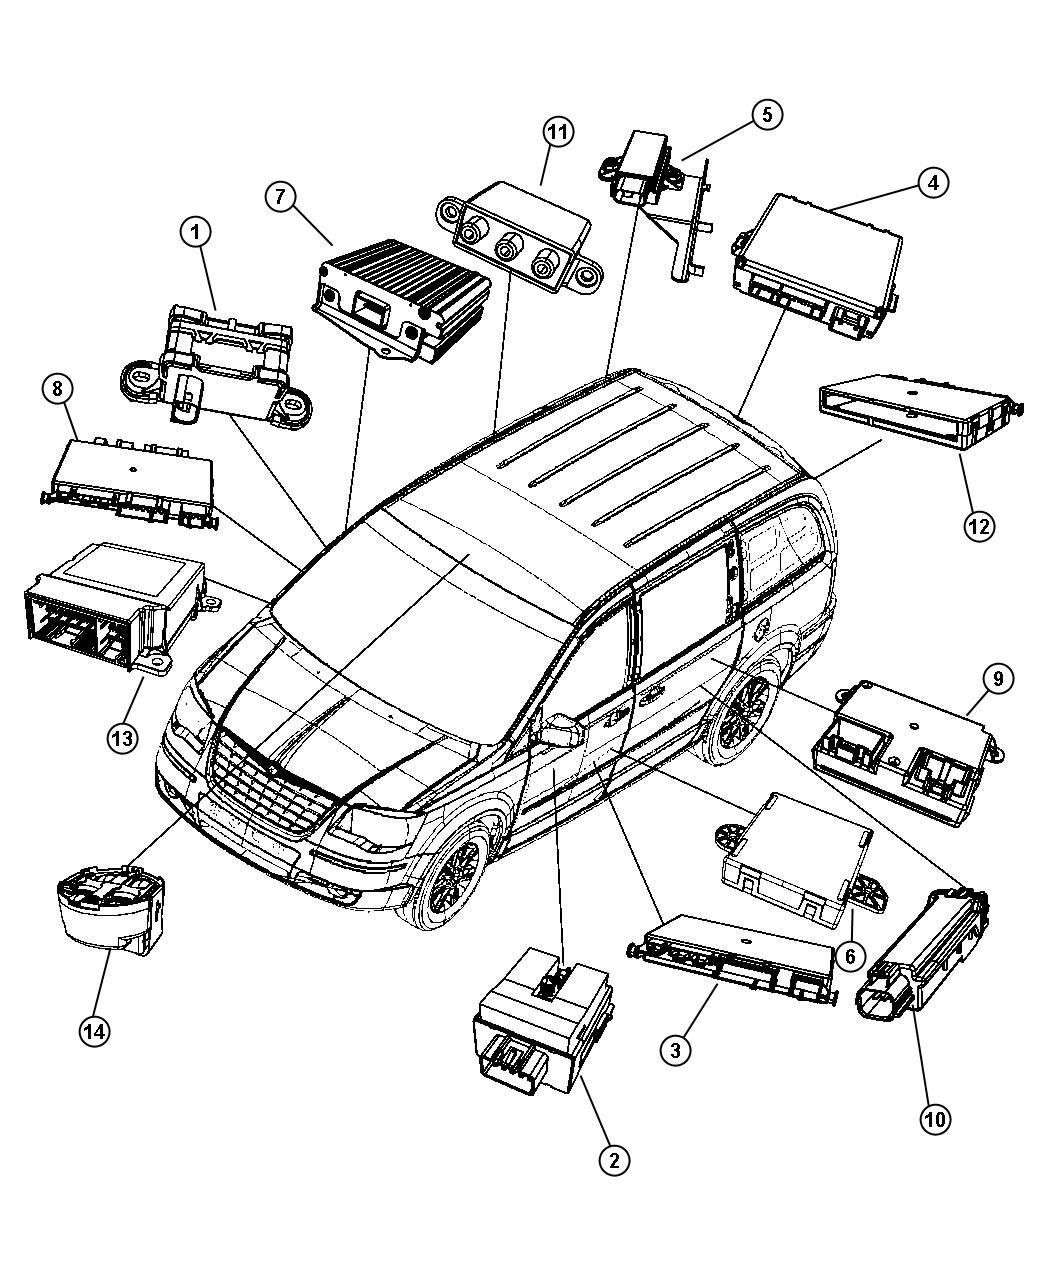 1997 dodge grand caravan wiring diagram 2008 dodge grand